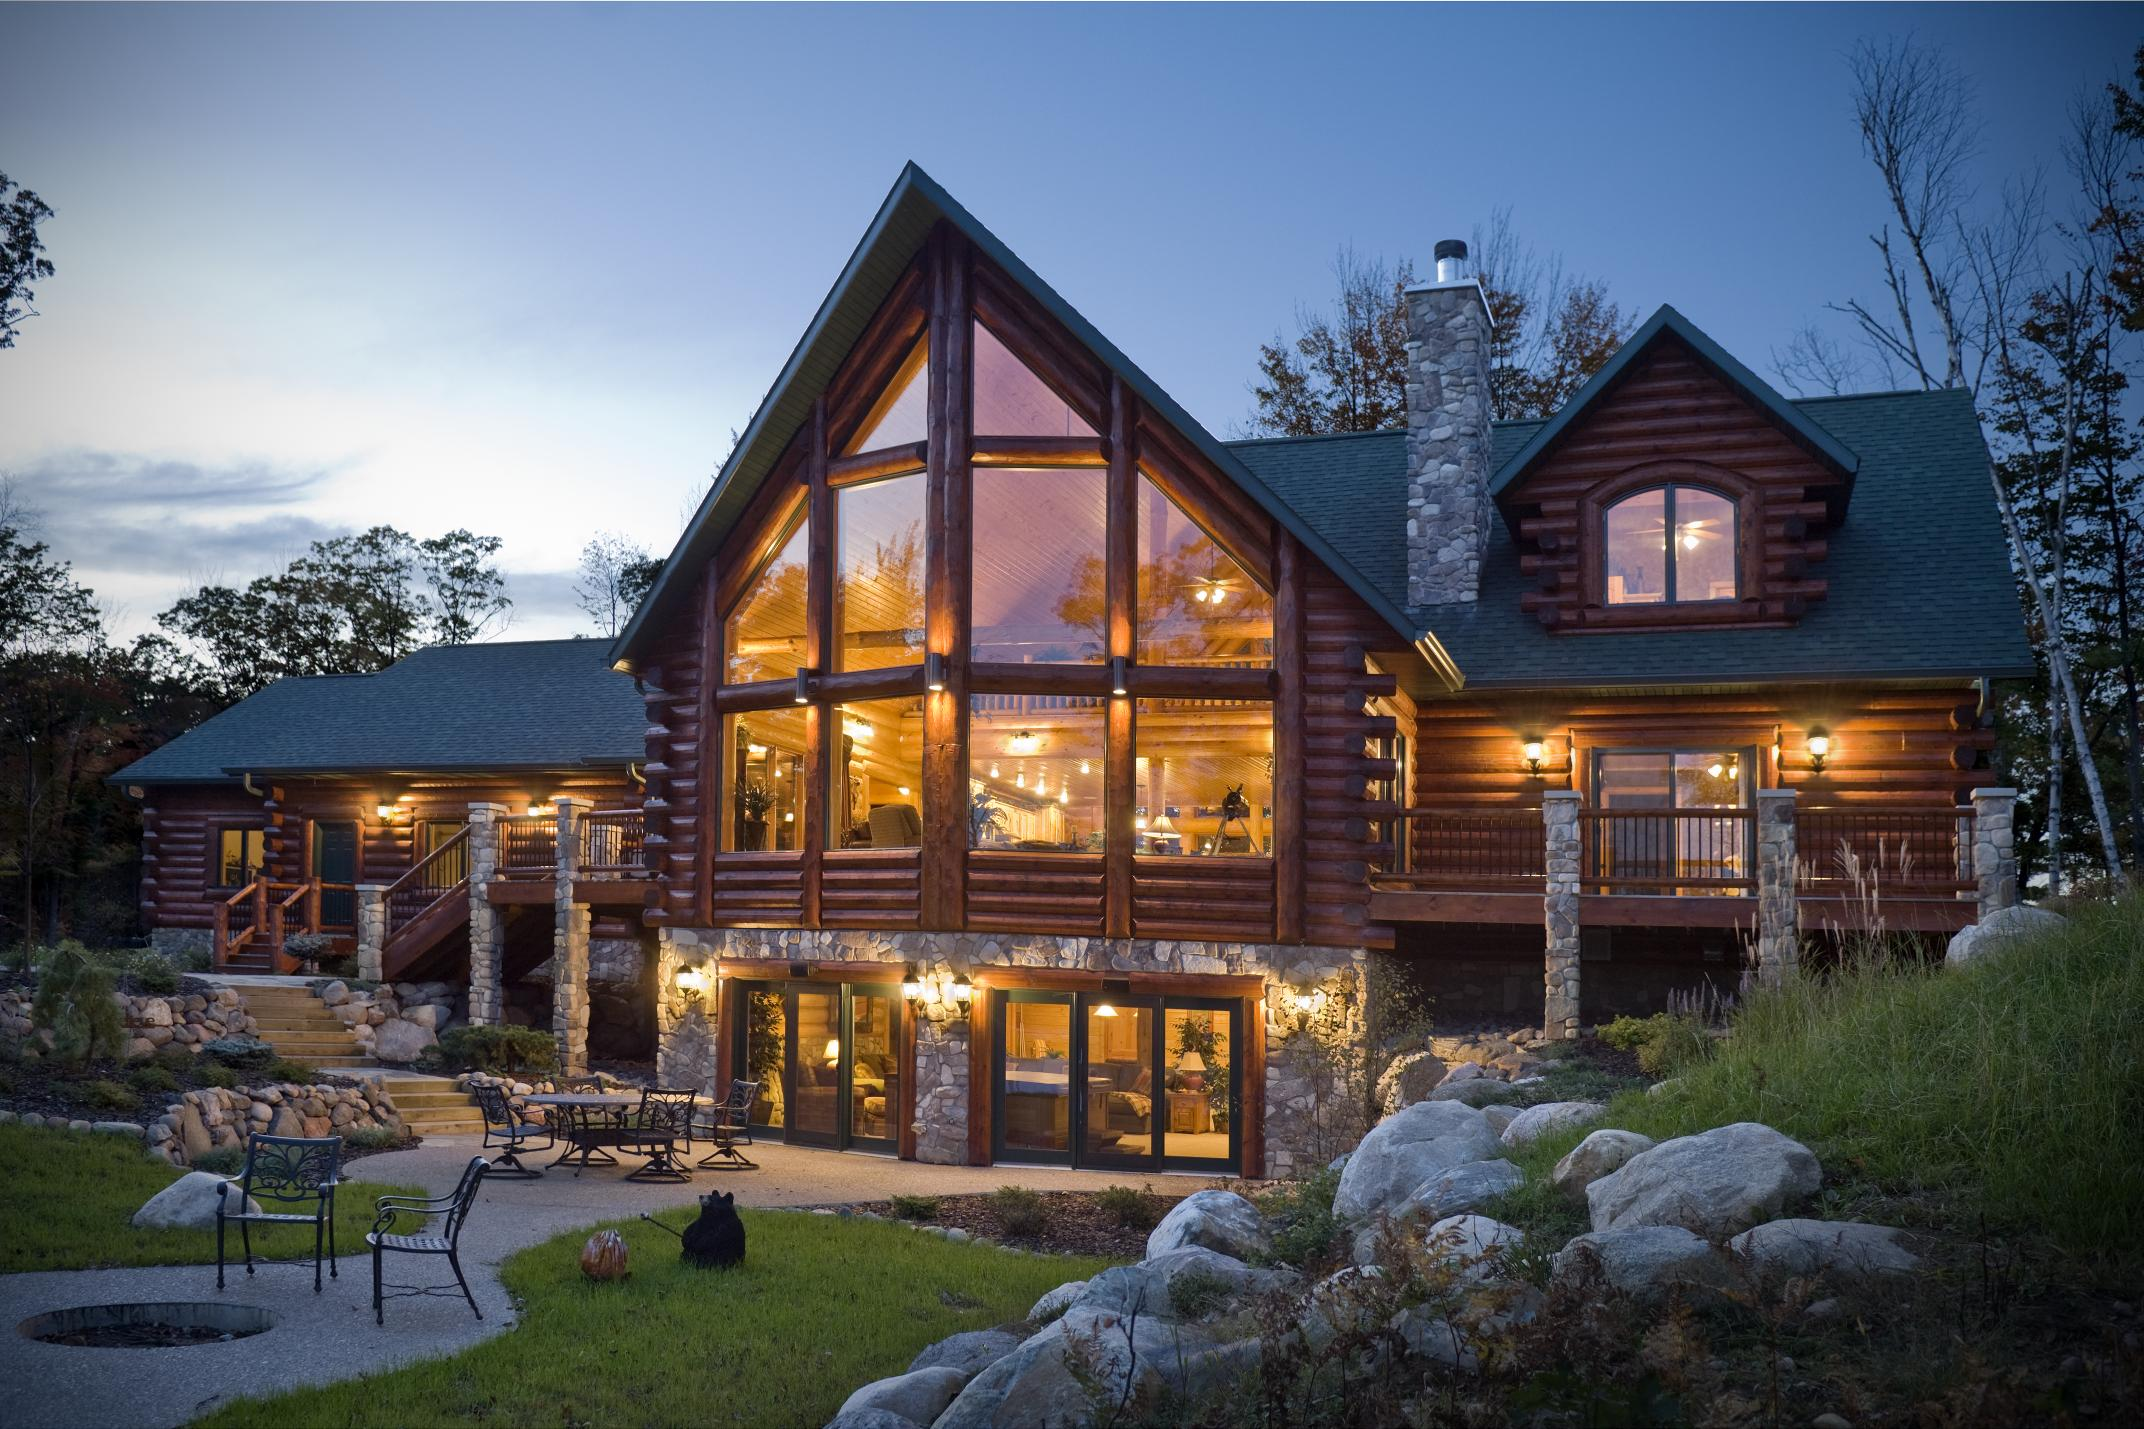 Sashco log home products and golden eagle log homes expand for Luxury home windows